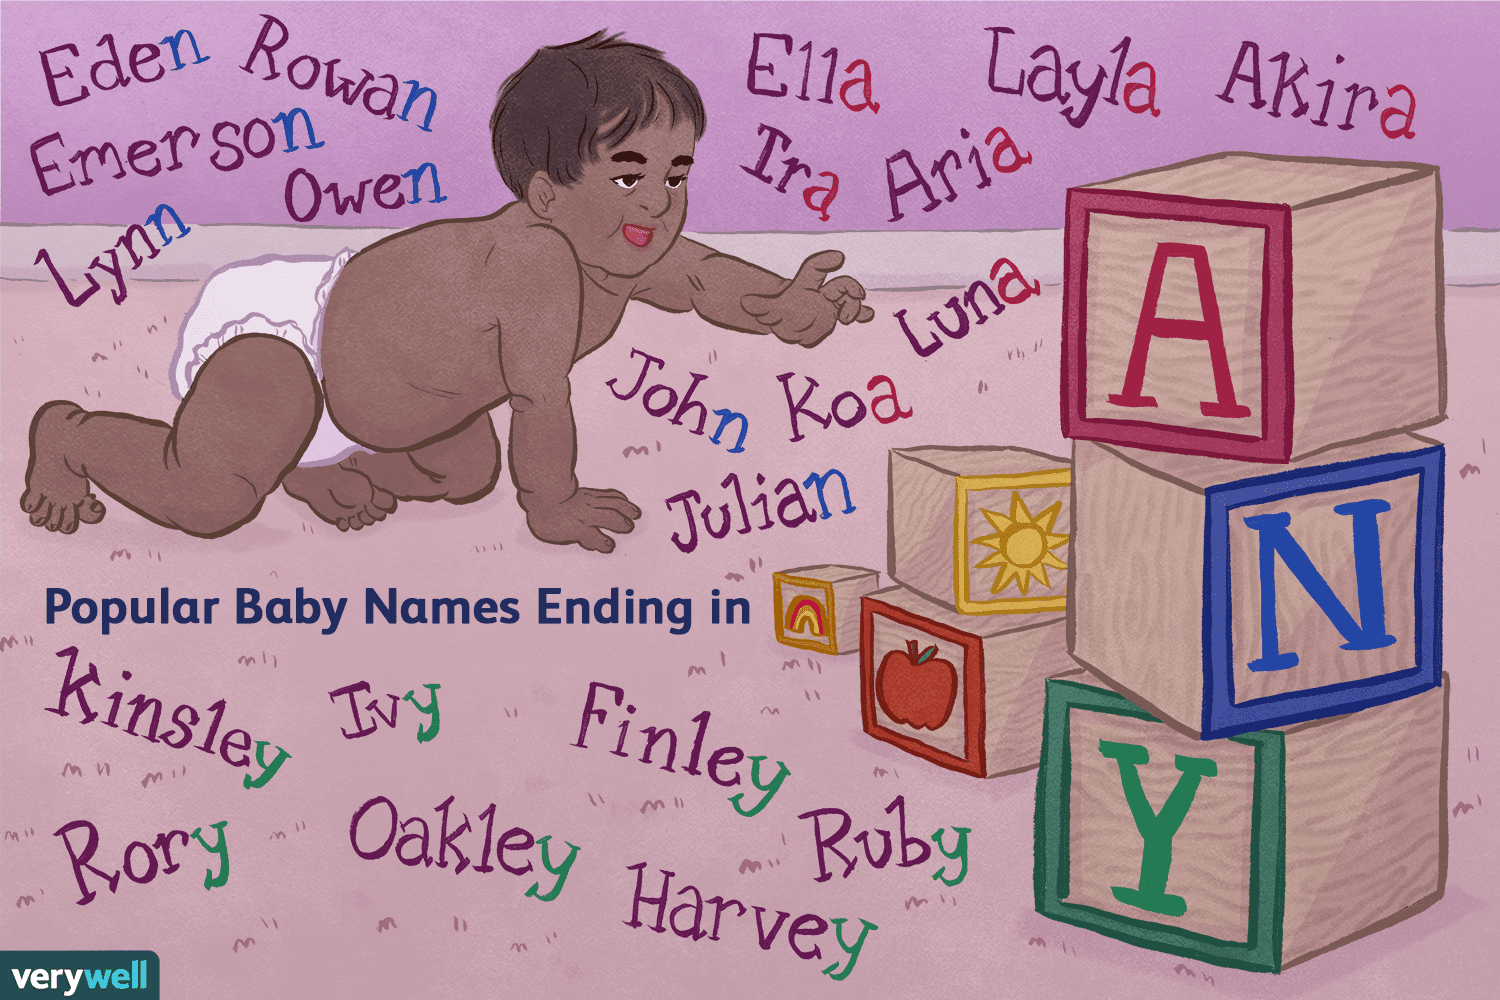 300 Popular Boy and Girl Baby Names Ending in A, N, and Y